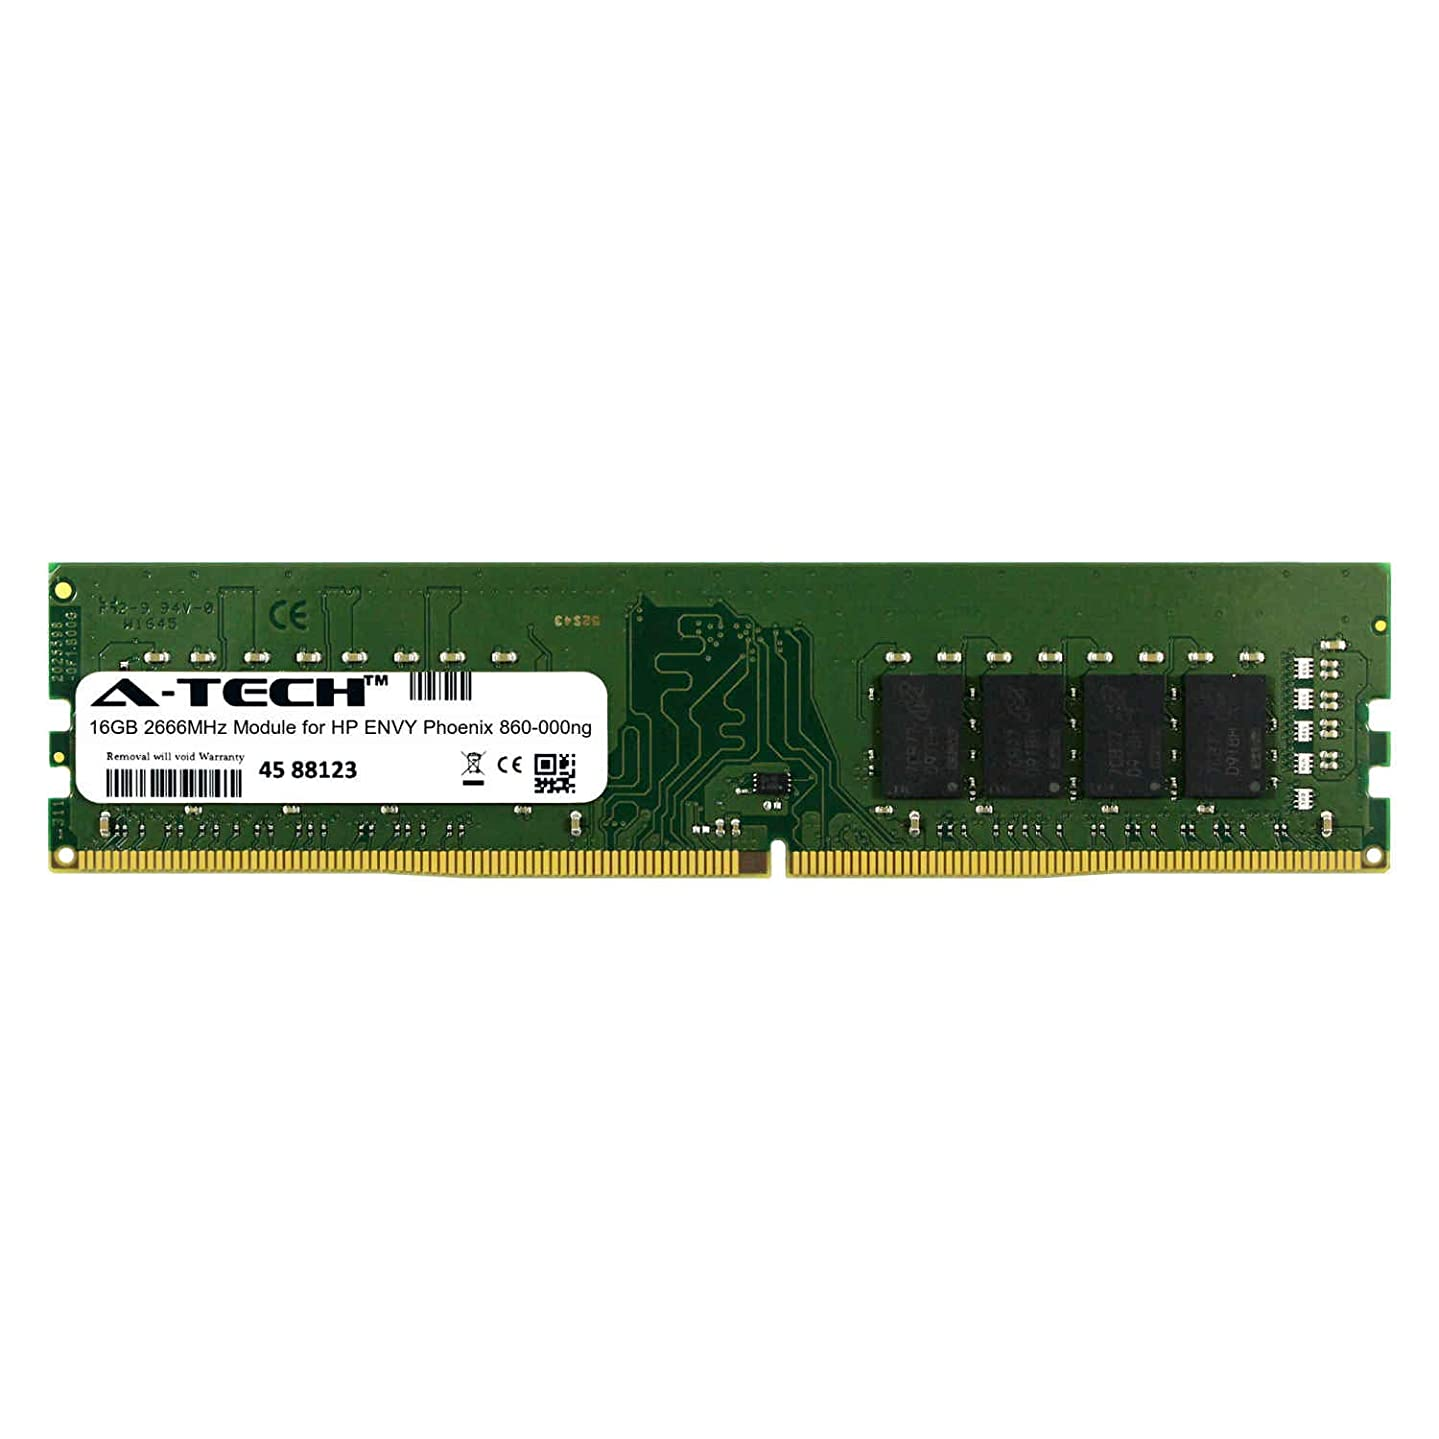 A-Tech 16GB Module for HP Envy Phoenix 860-000ng Desktop & Workstation Motherboard Compatible DDR4 2666Mhz Memory Ram (ATMS274192A25823X1)